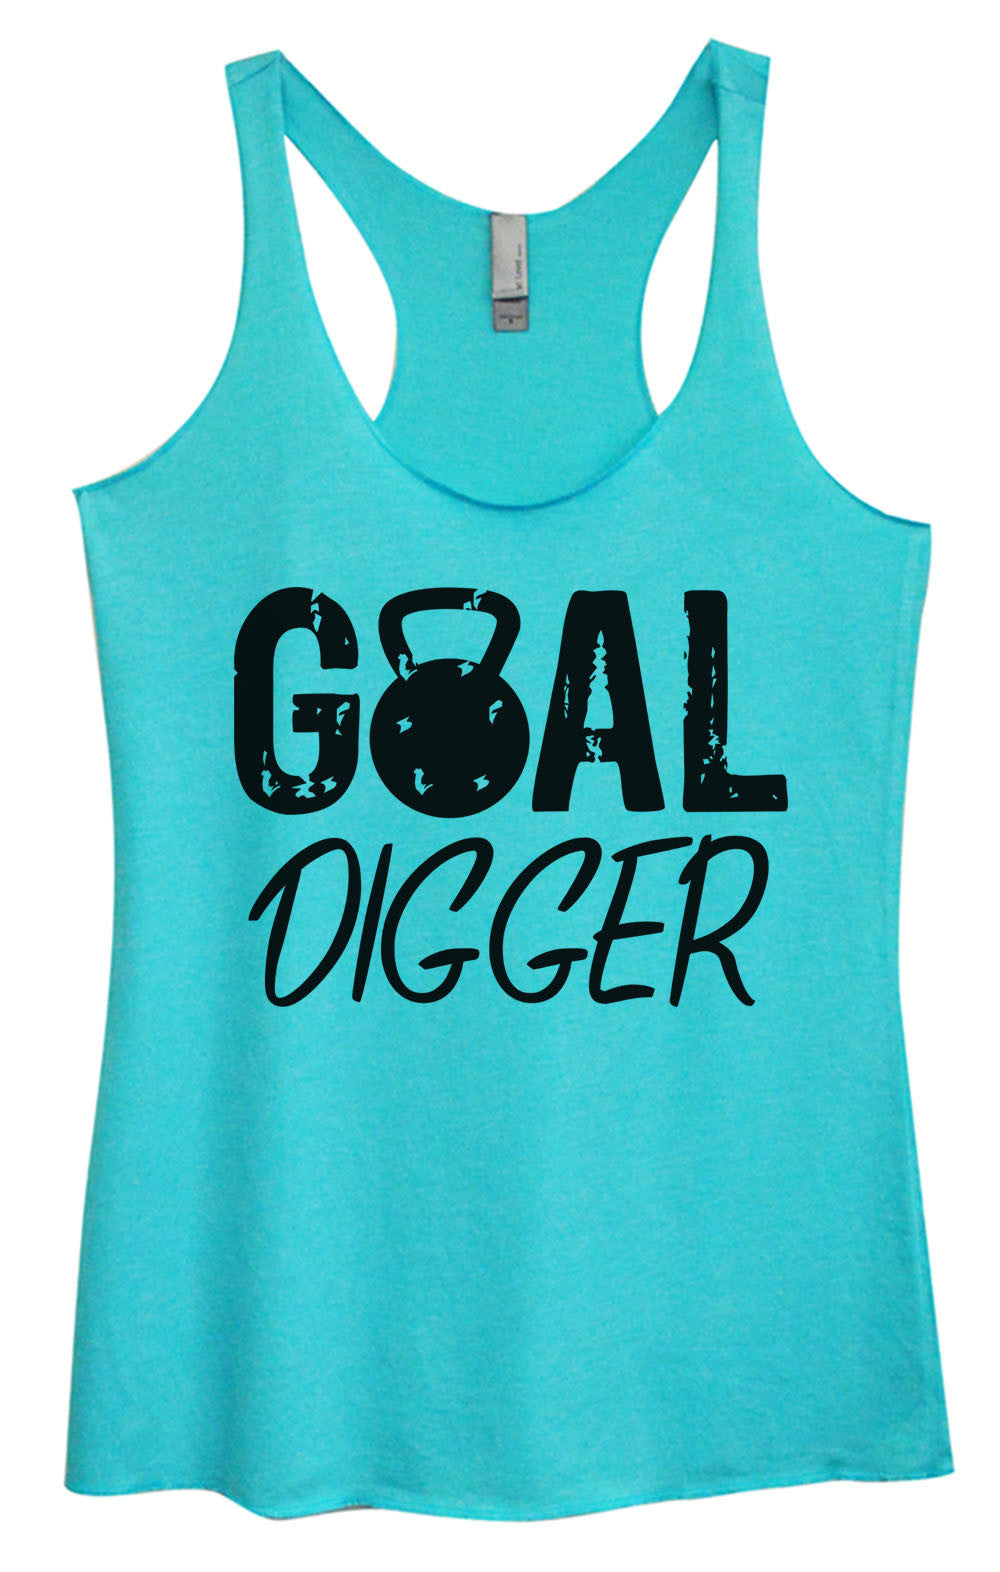 Womens Fashion Triblend Tank Top - Goal Digger - Tri-959 - Funny Shirts Tank Tops Burnouts and Triblends  - 2